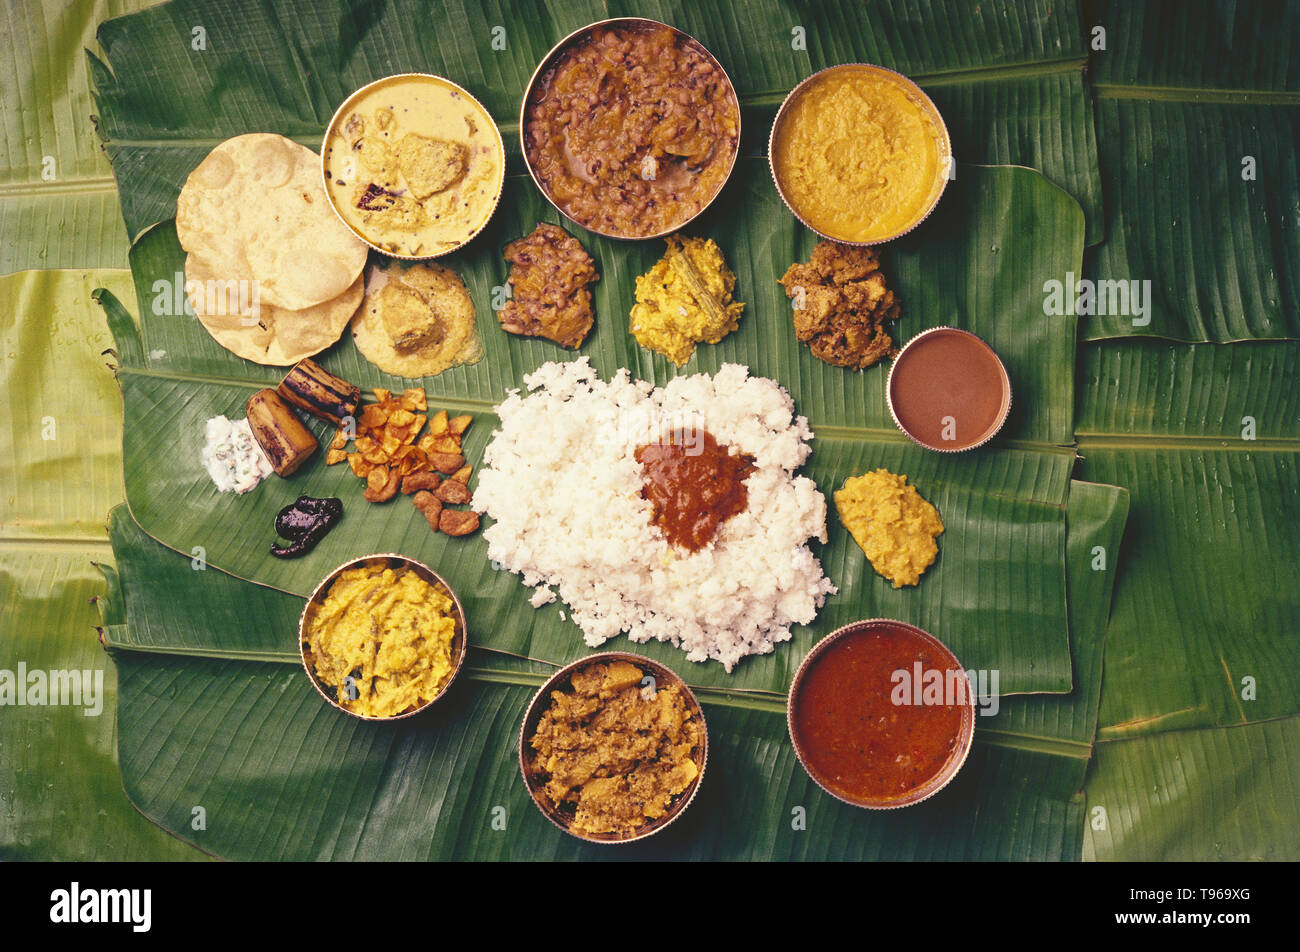 Kerala tradional meal served on a banyan leaf - Stock Image